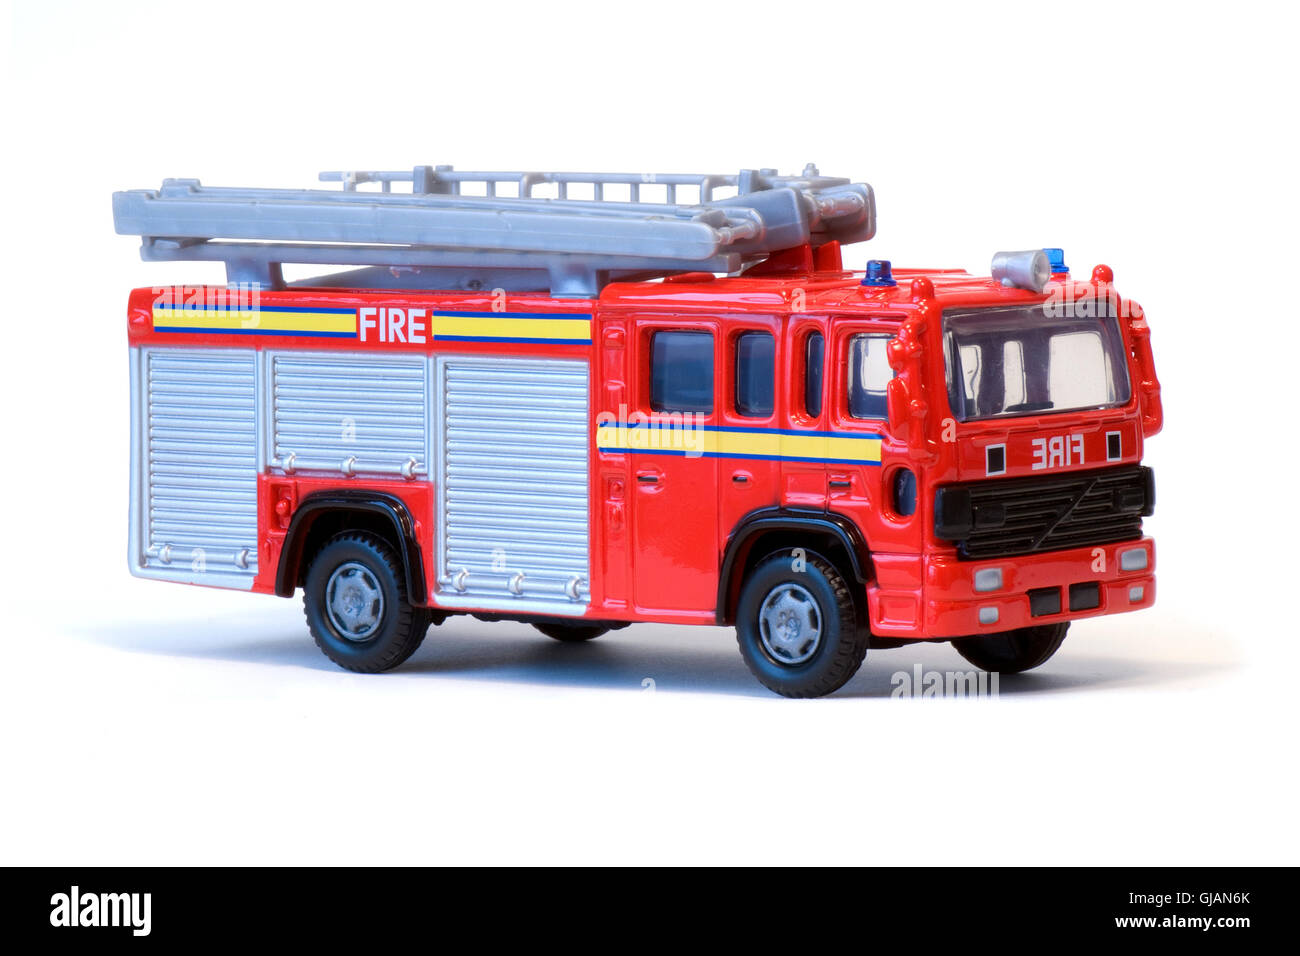 A red toy fire engine. Stock Photo